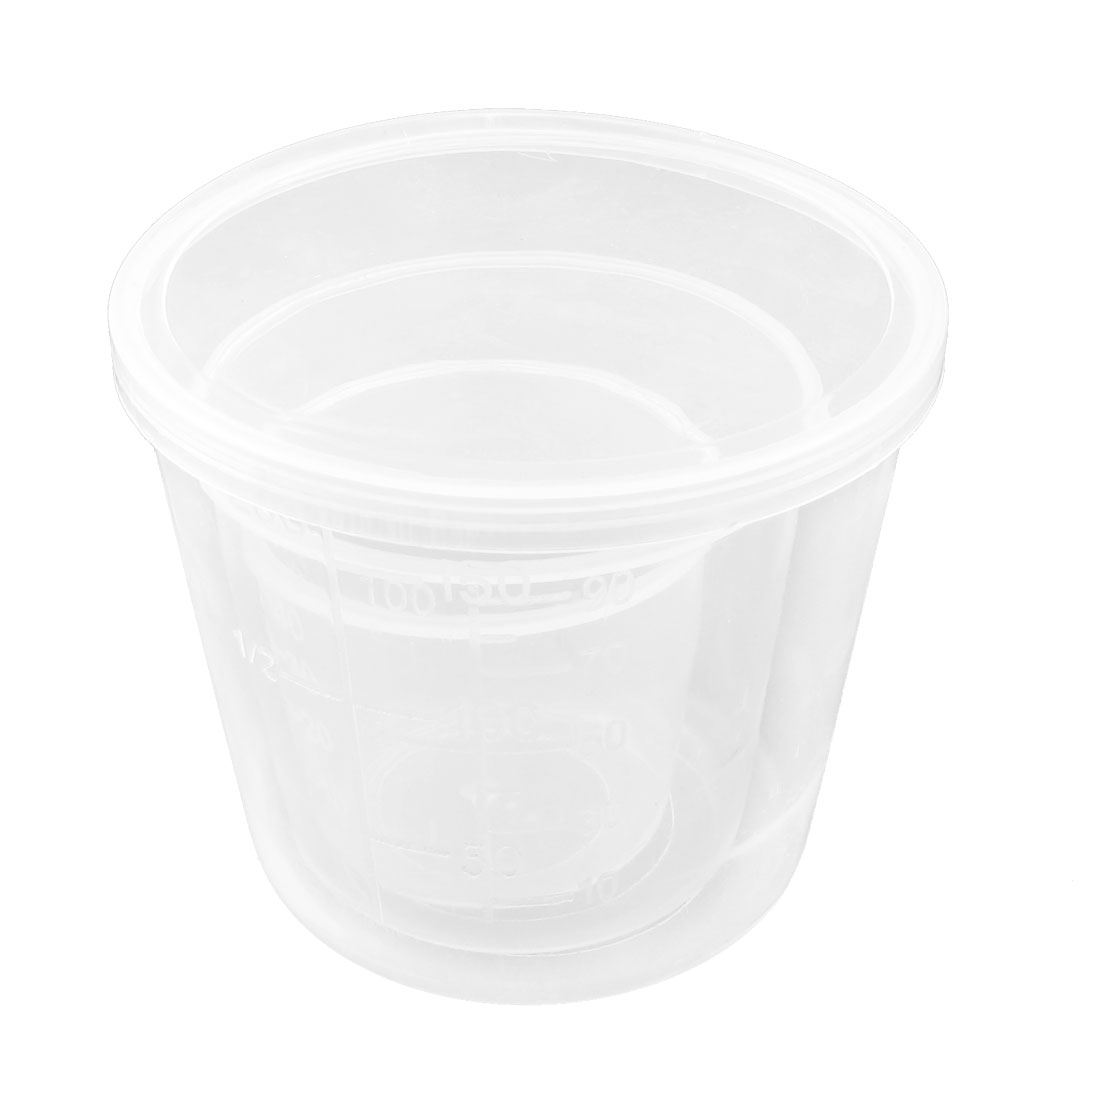 3 in 1 Home Lab Clear White 50/100/200ML Round Mouth Measuring Cup Beaker Set